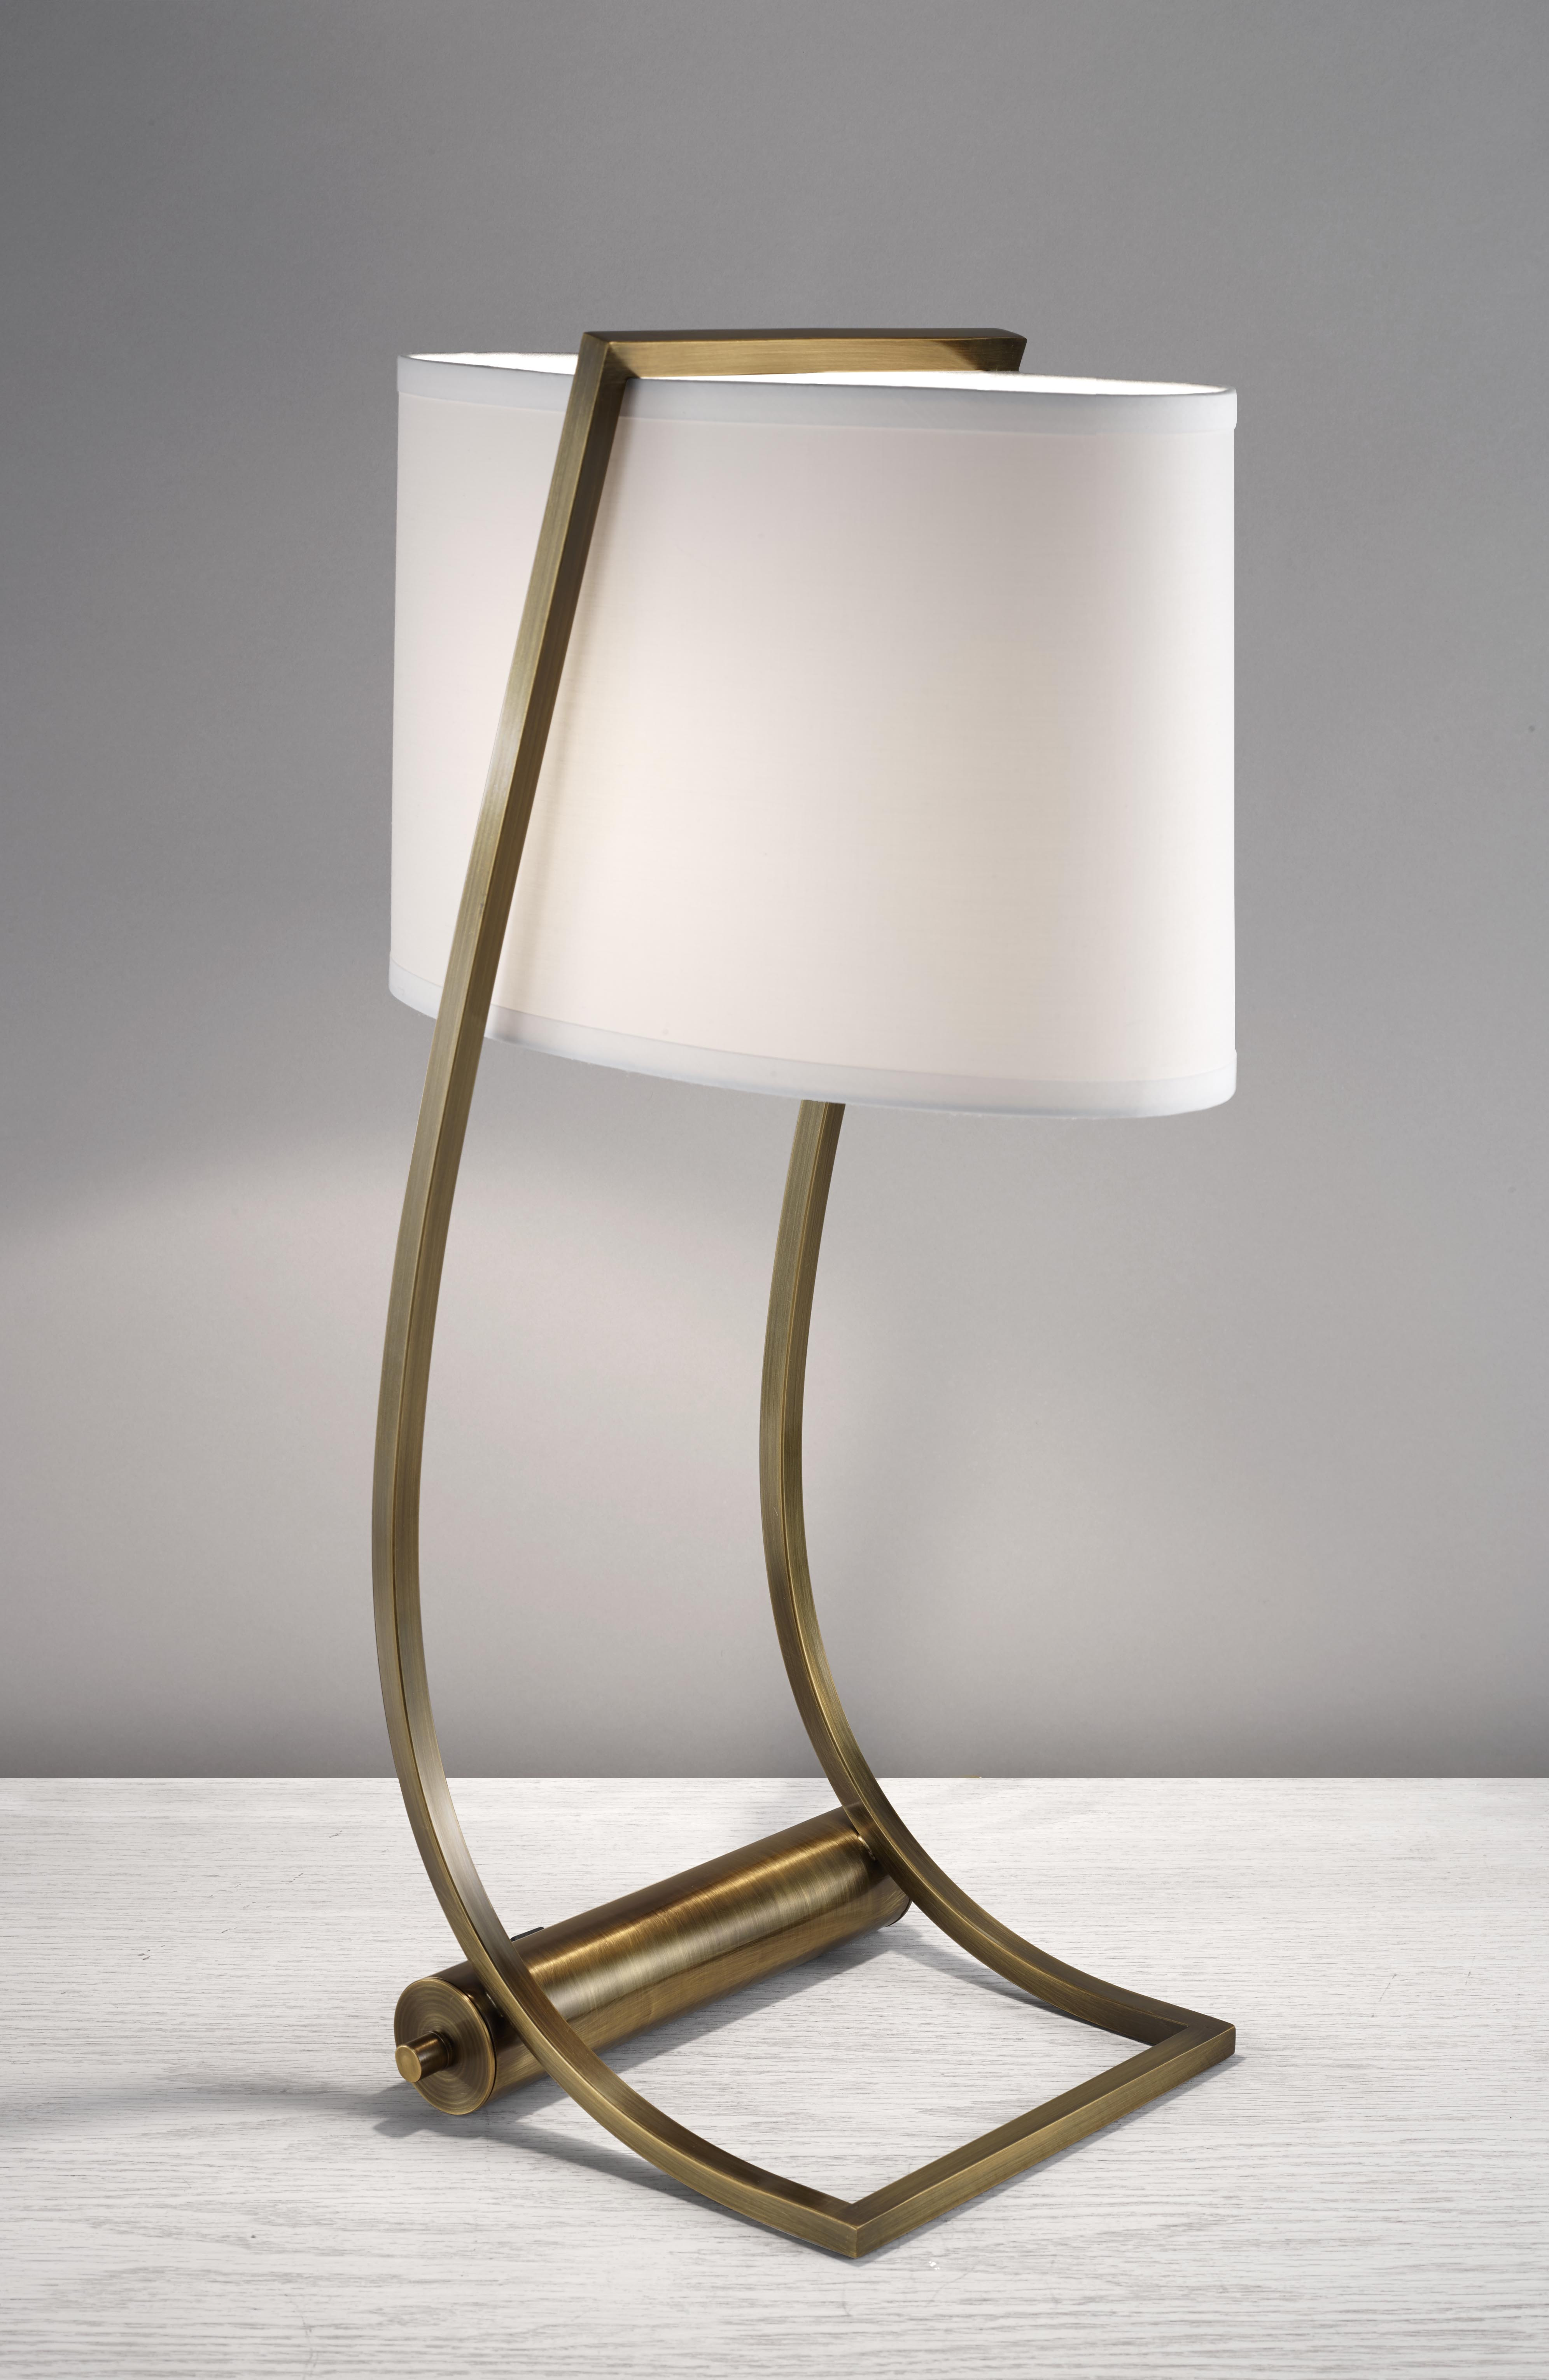 the new helix table lamp by feiss the new laurie table lamp by feiss. Black Bedroom Furniture Sets. Home Design Ideas